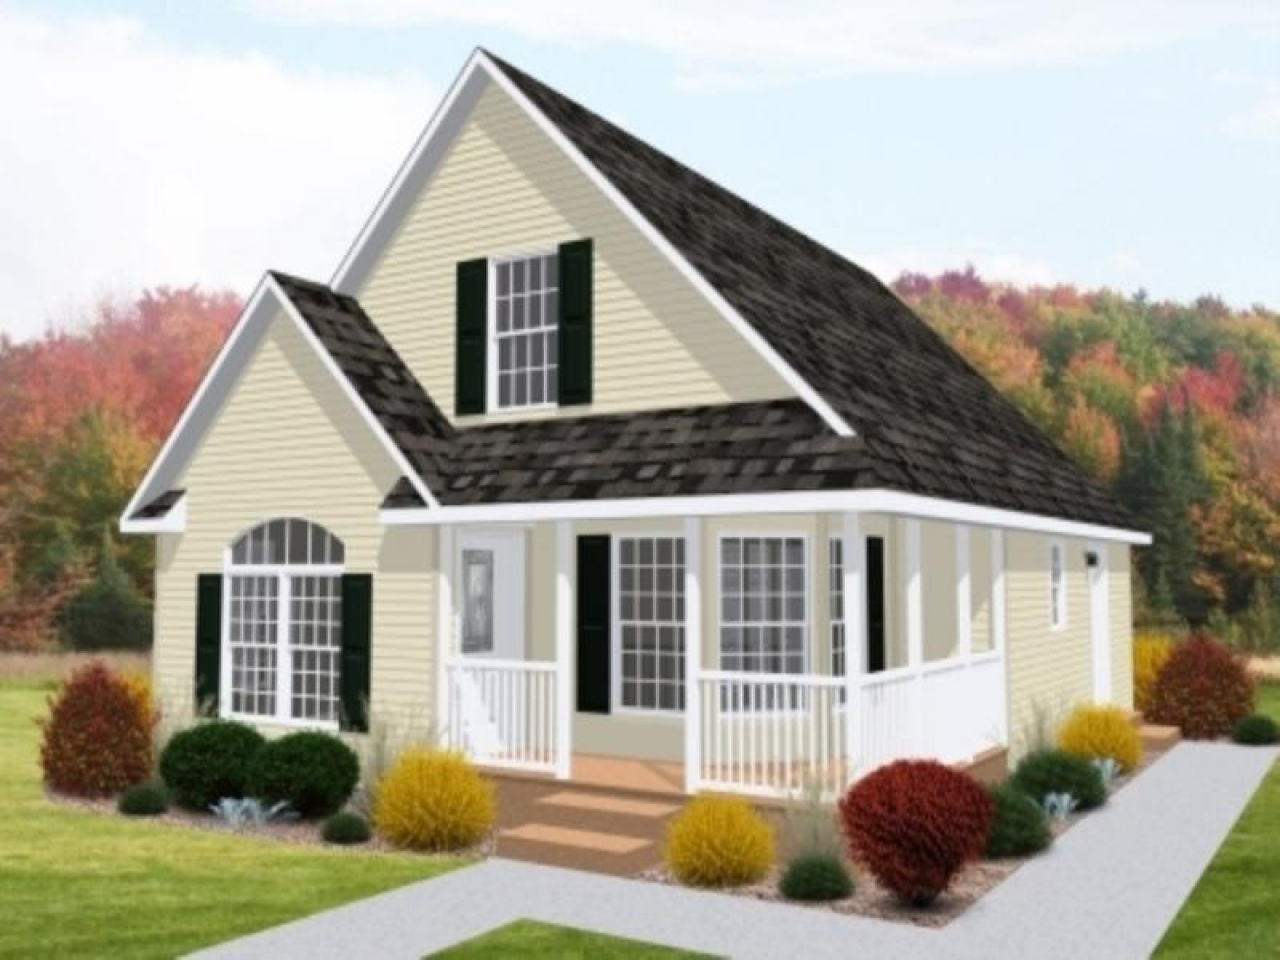 Bungalow style modular homes sale modular cottage homes for Bungalow style modular homes